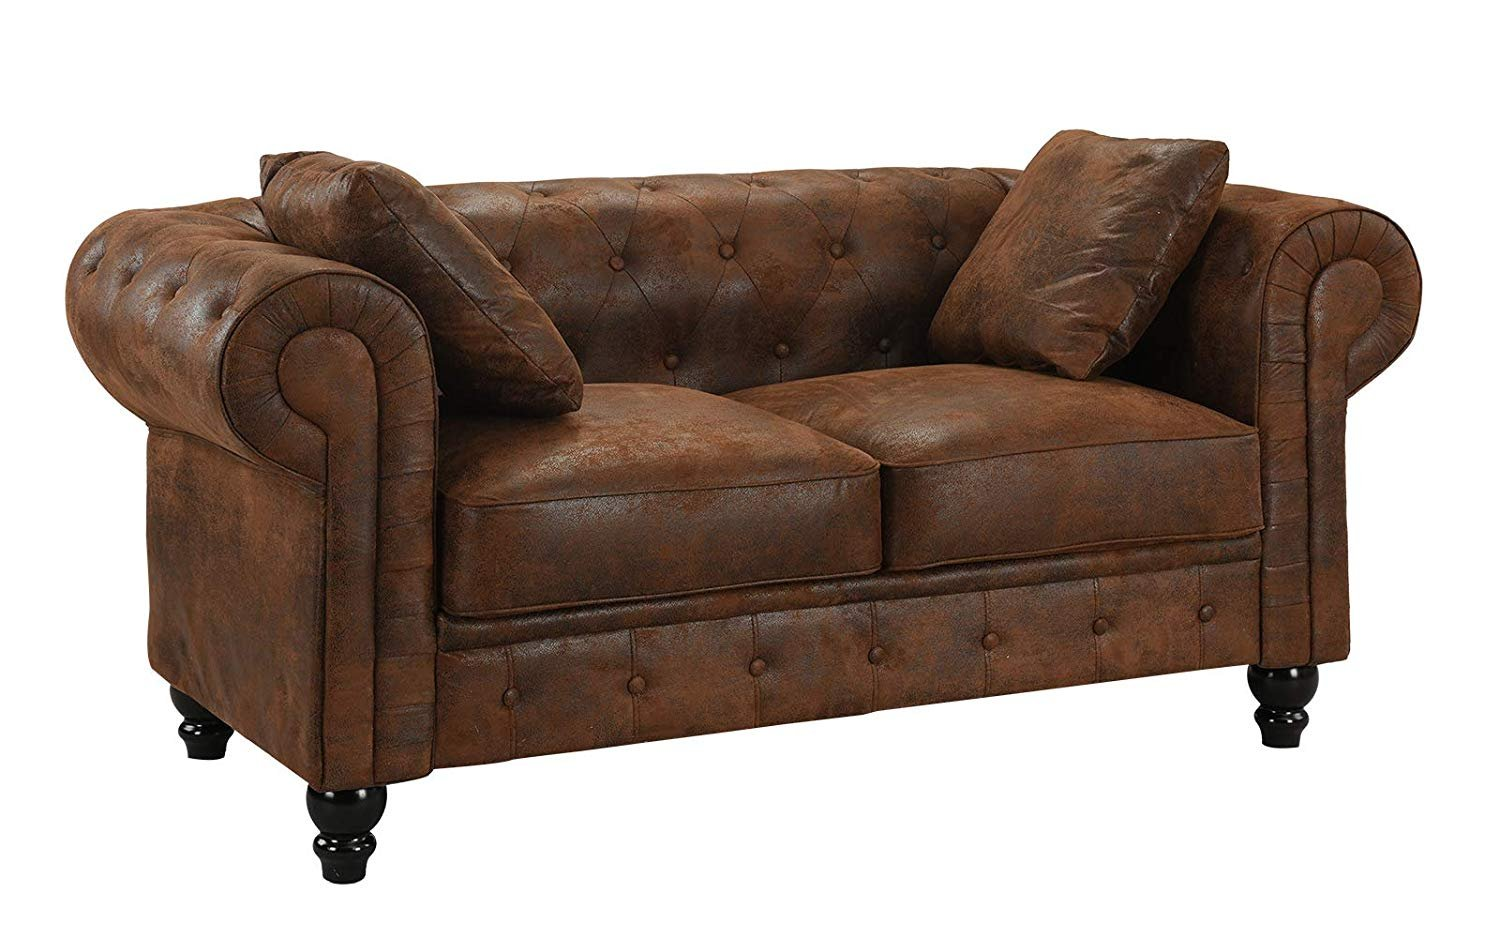 Details About Large Loveseat Chesterfield Sofa In Tufted Faux Suede Love Seat Couch Dark Brown